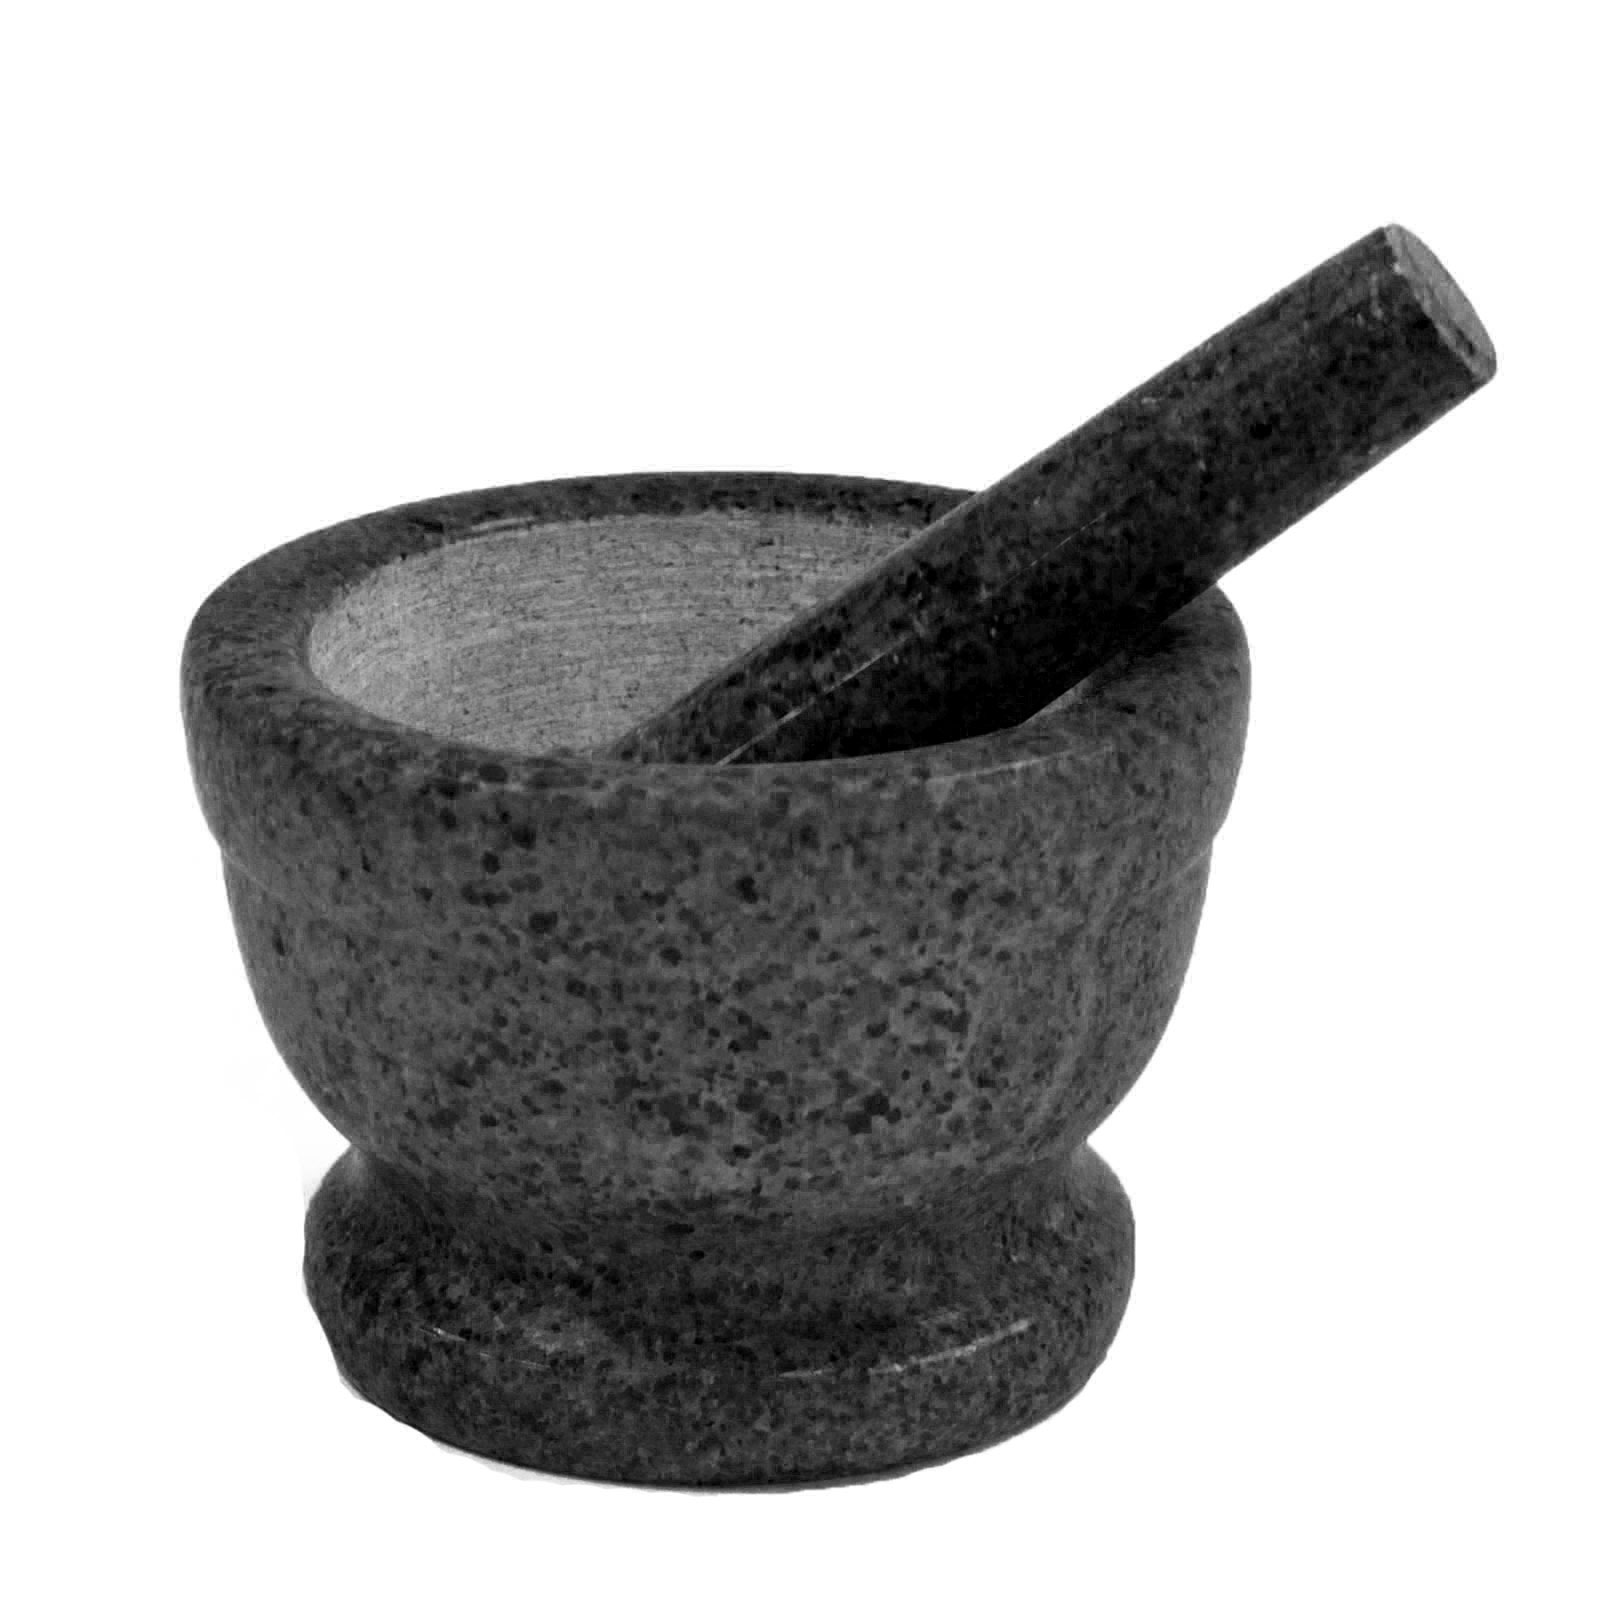 Medium Black Marble Pestle   Mortal 10x7cm